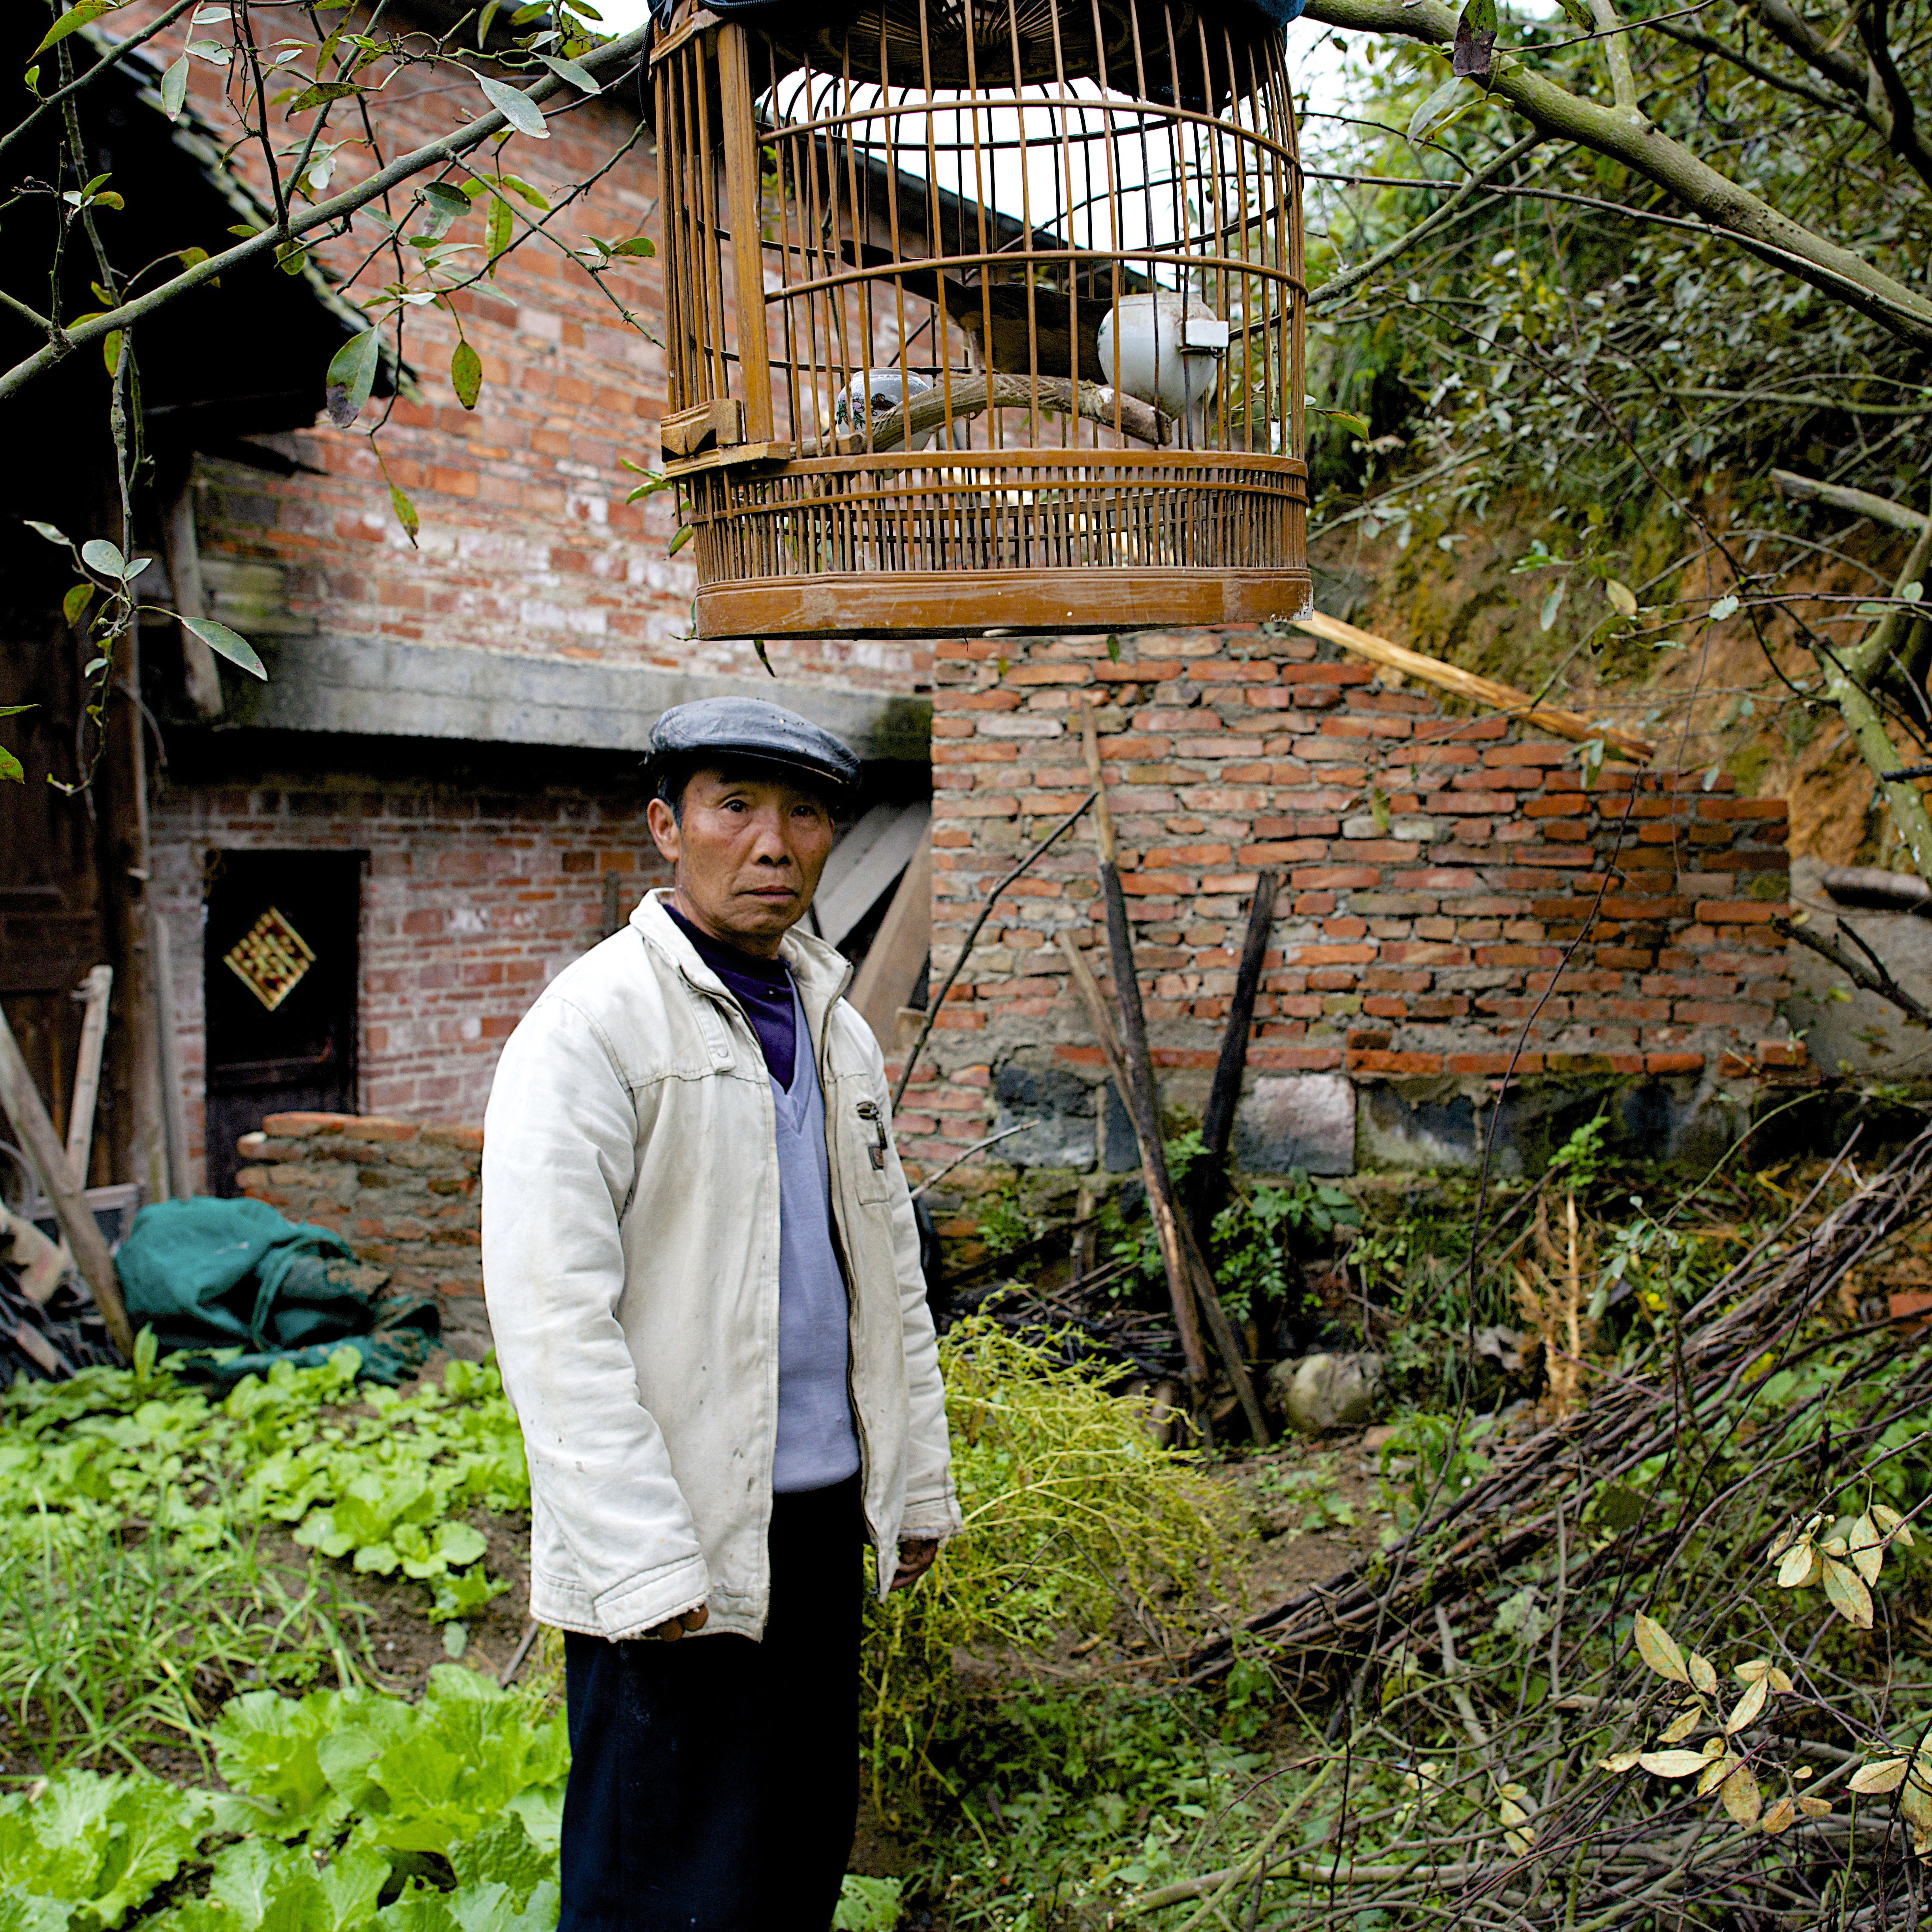 A man pauses from weeding to listen to the songbird he carried to his garden in the Shui Dian village.